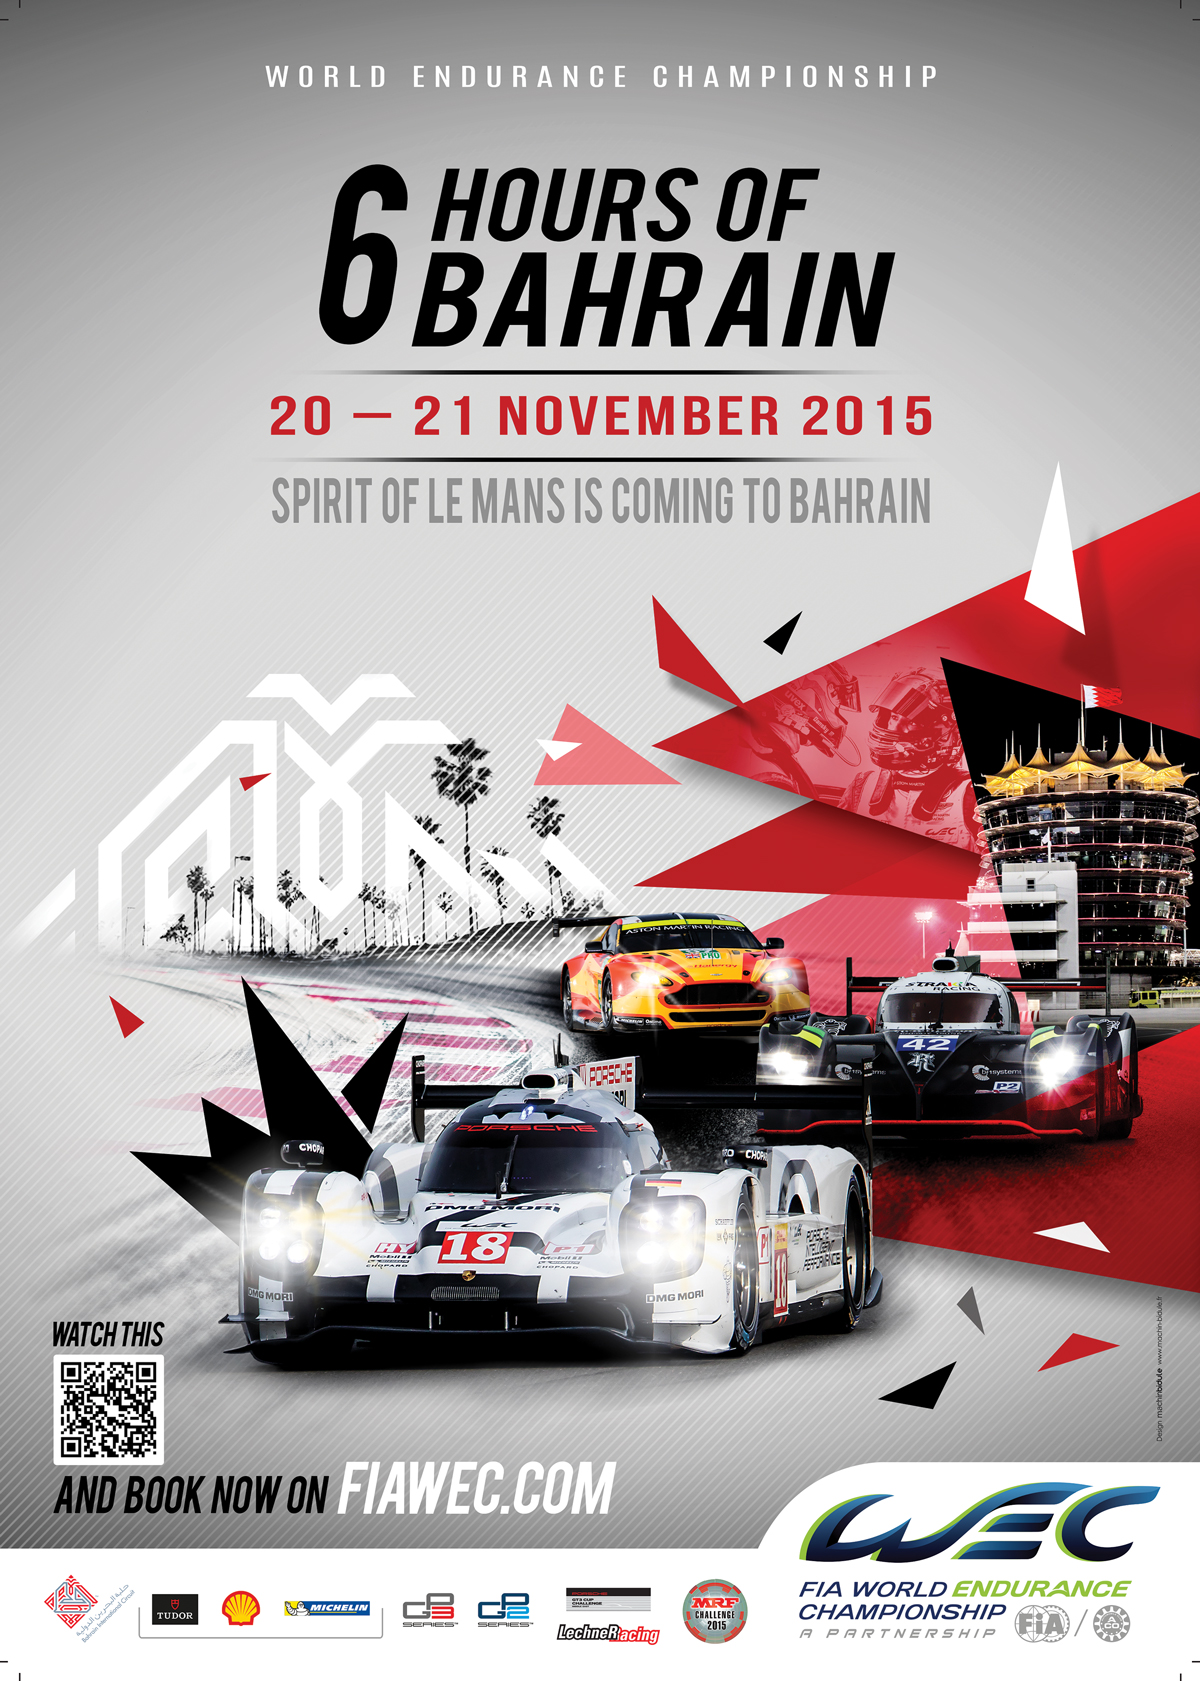 porsche wec 2017 with Tiedosto Fia Wec Bahrain 2015 on Logotipos De Las Marcas De Coches Bmw additionally La Porsche 911 Rsr 2017 Partiellement Devoilee besides Porsche 991 Gt2 Rs also Felipe Massa as well Brdc Formula 4 To Switch To Fia F4 Spec Chassis For The Future.